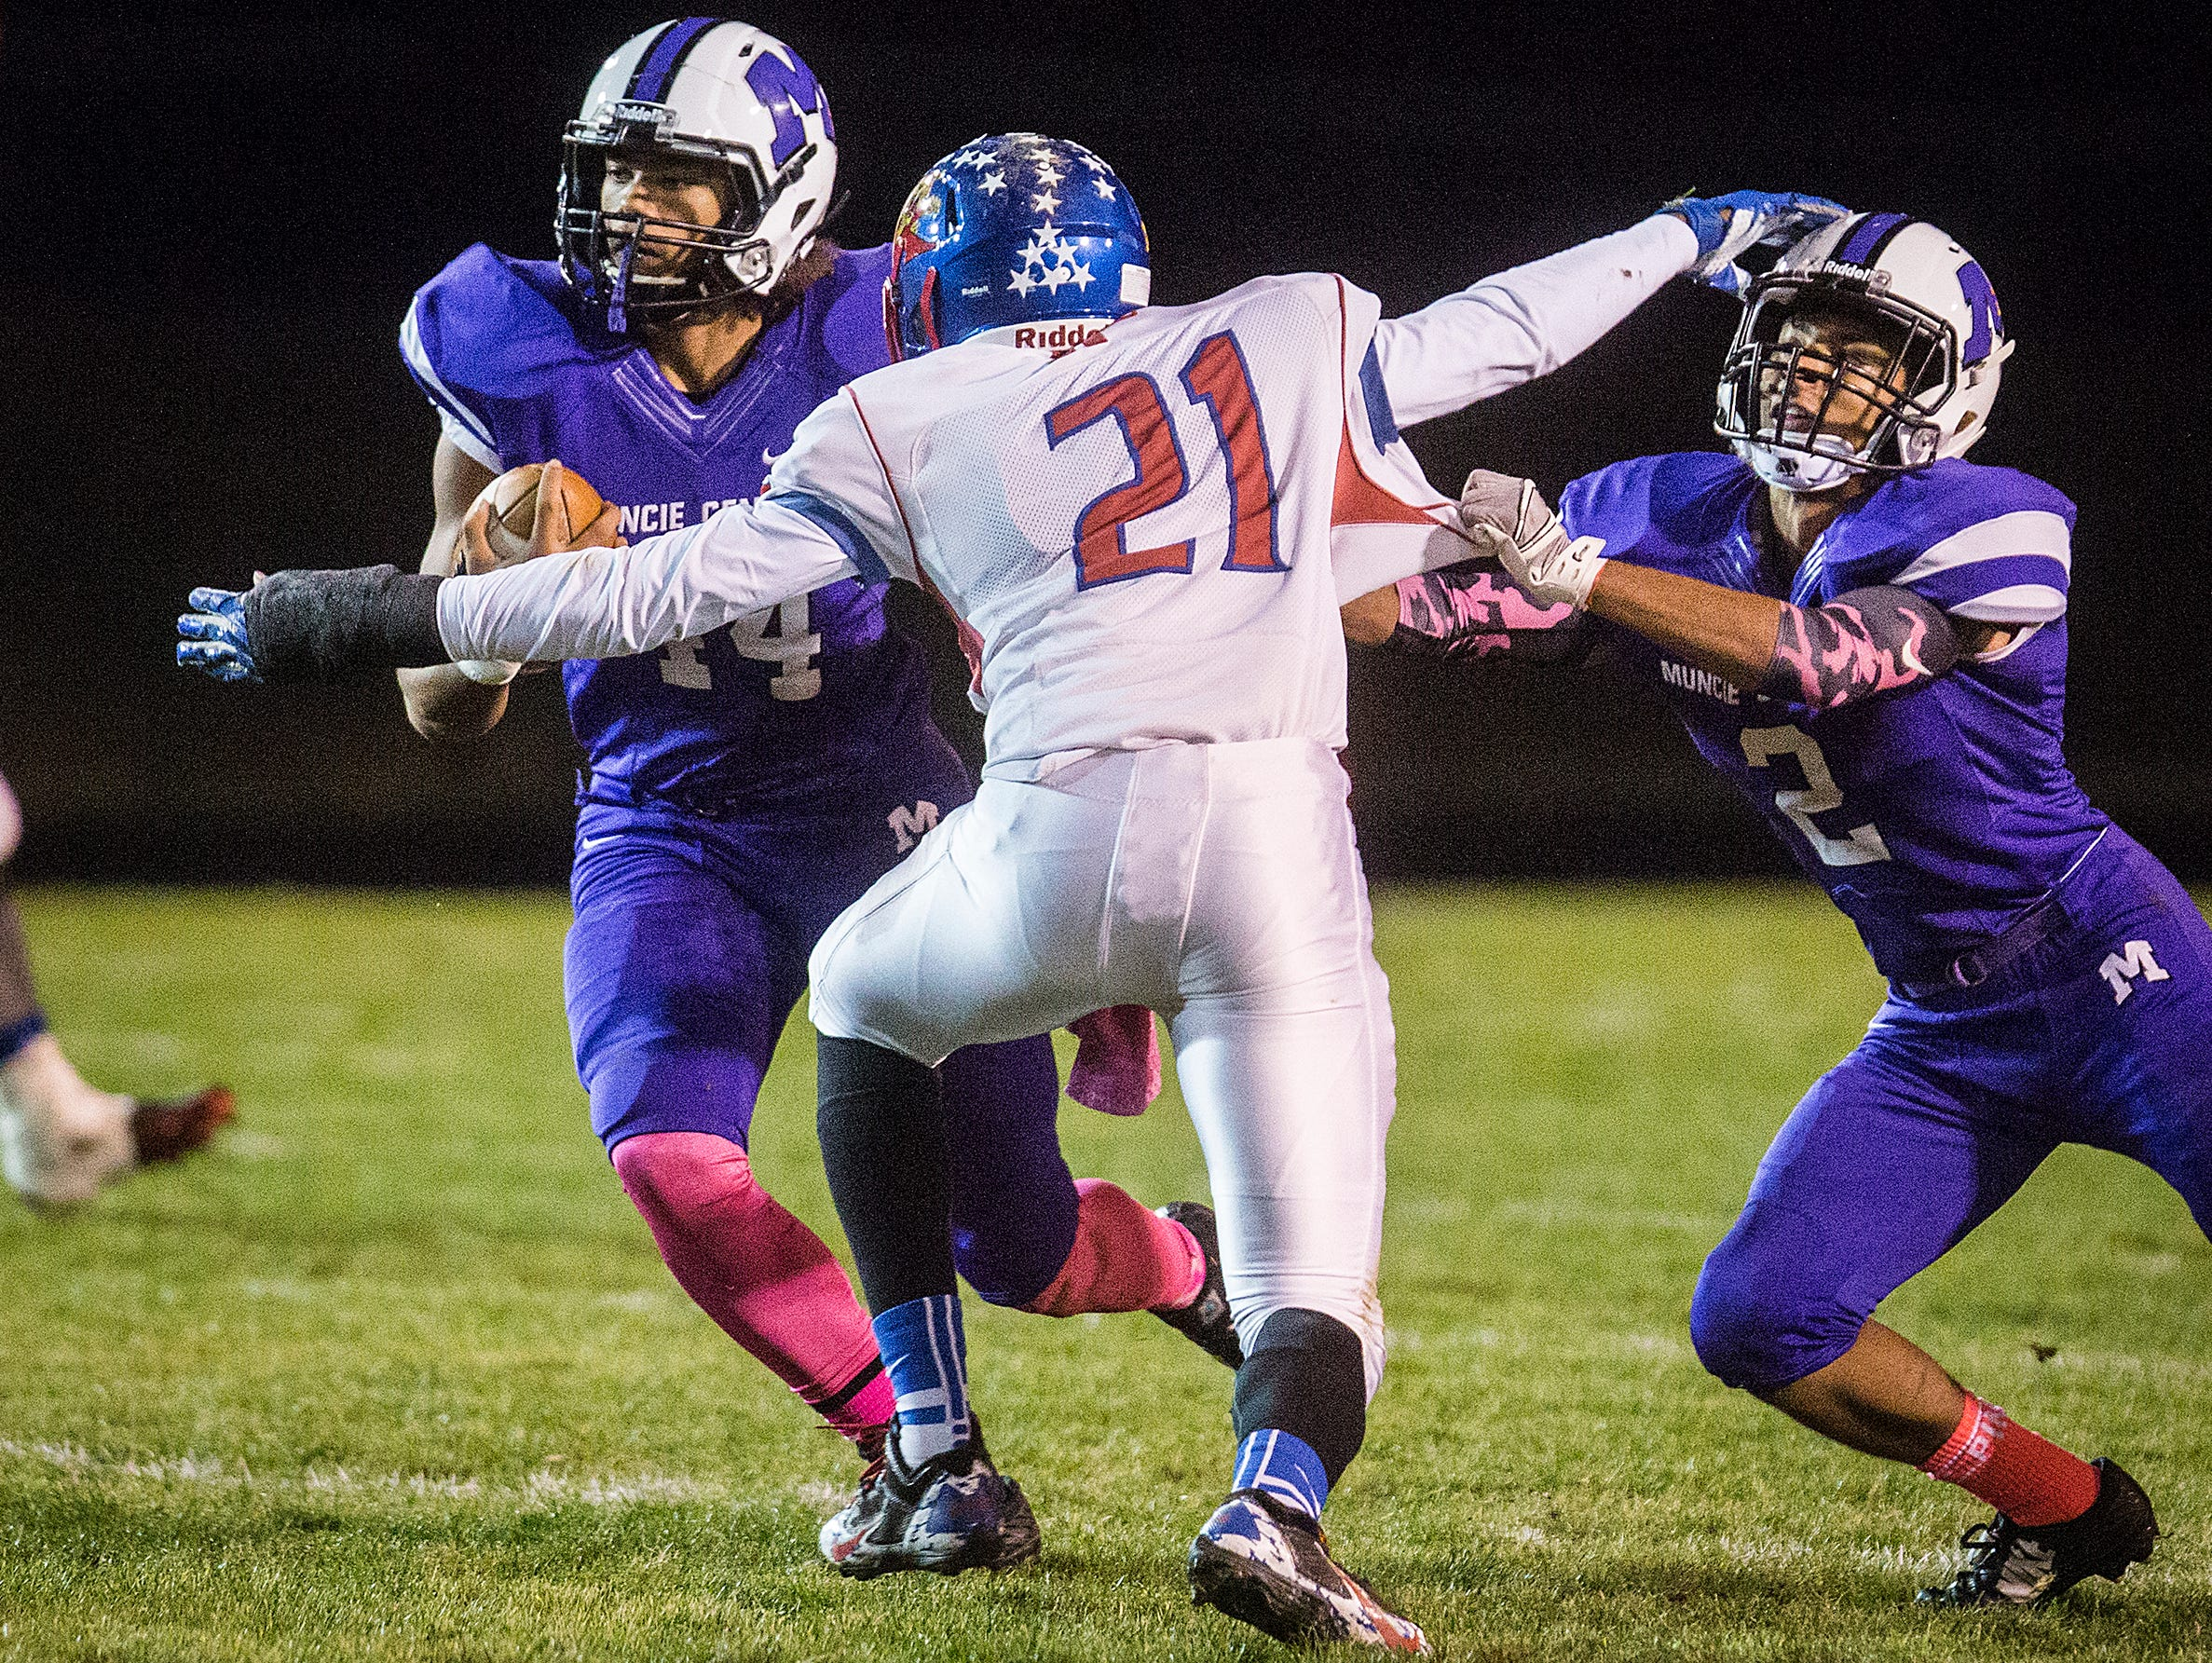 Central's Andre Wells struggles past Kokomo's defense during their game at Central Friday, Oct. 30, 2015.